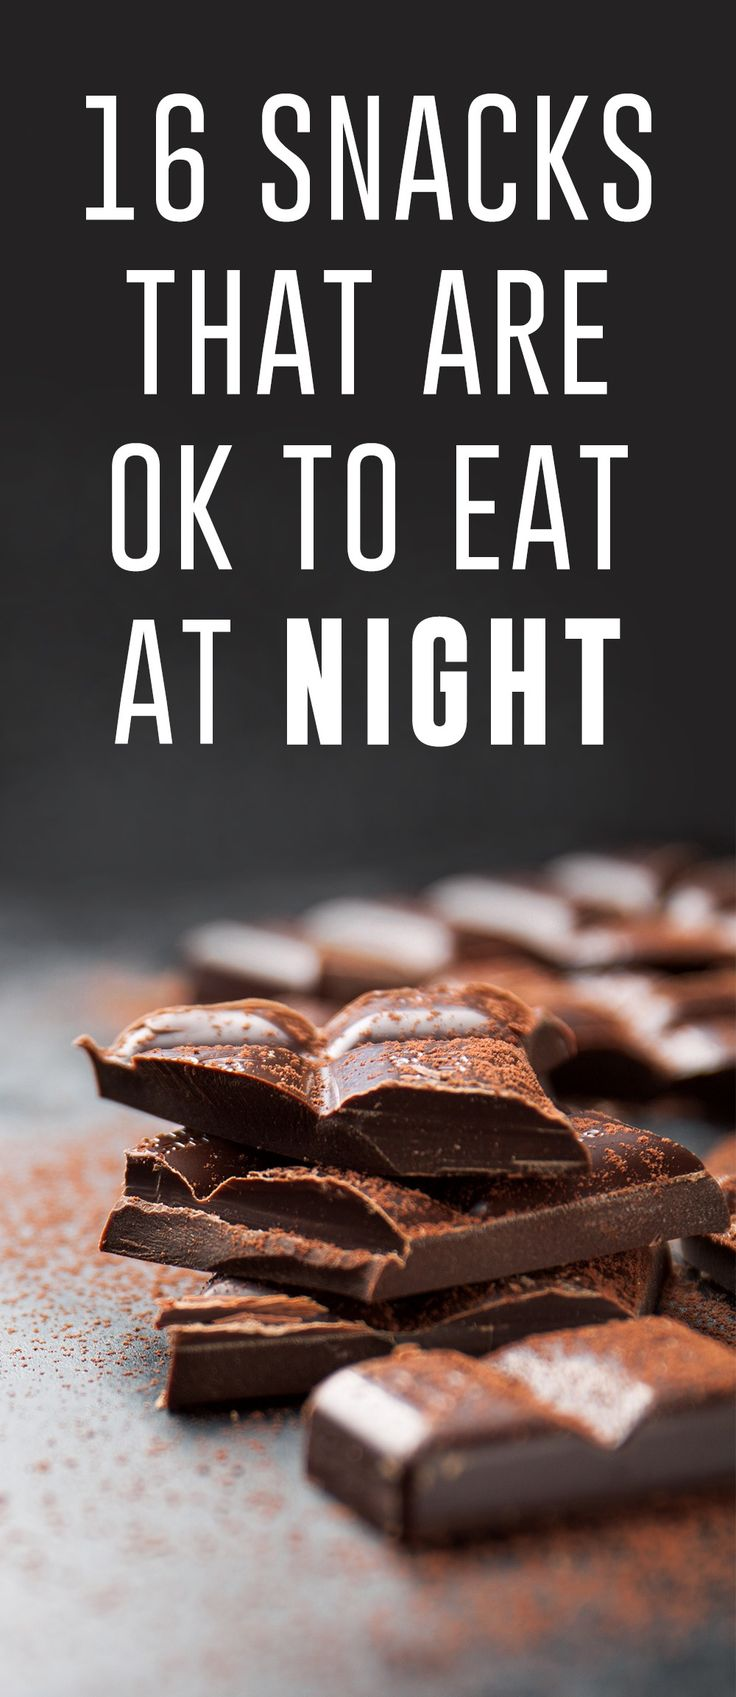 Craving a snack late at night? It's okay! There are plenty of nutritious and tasty snacks you can sneak in before bed and not bust your diet, like frozen blueberries, dark chocolate, protein cake batter and more!